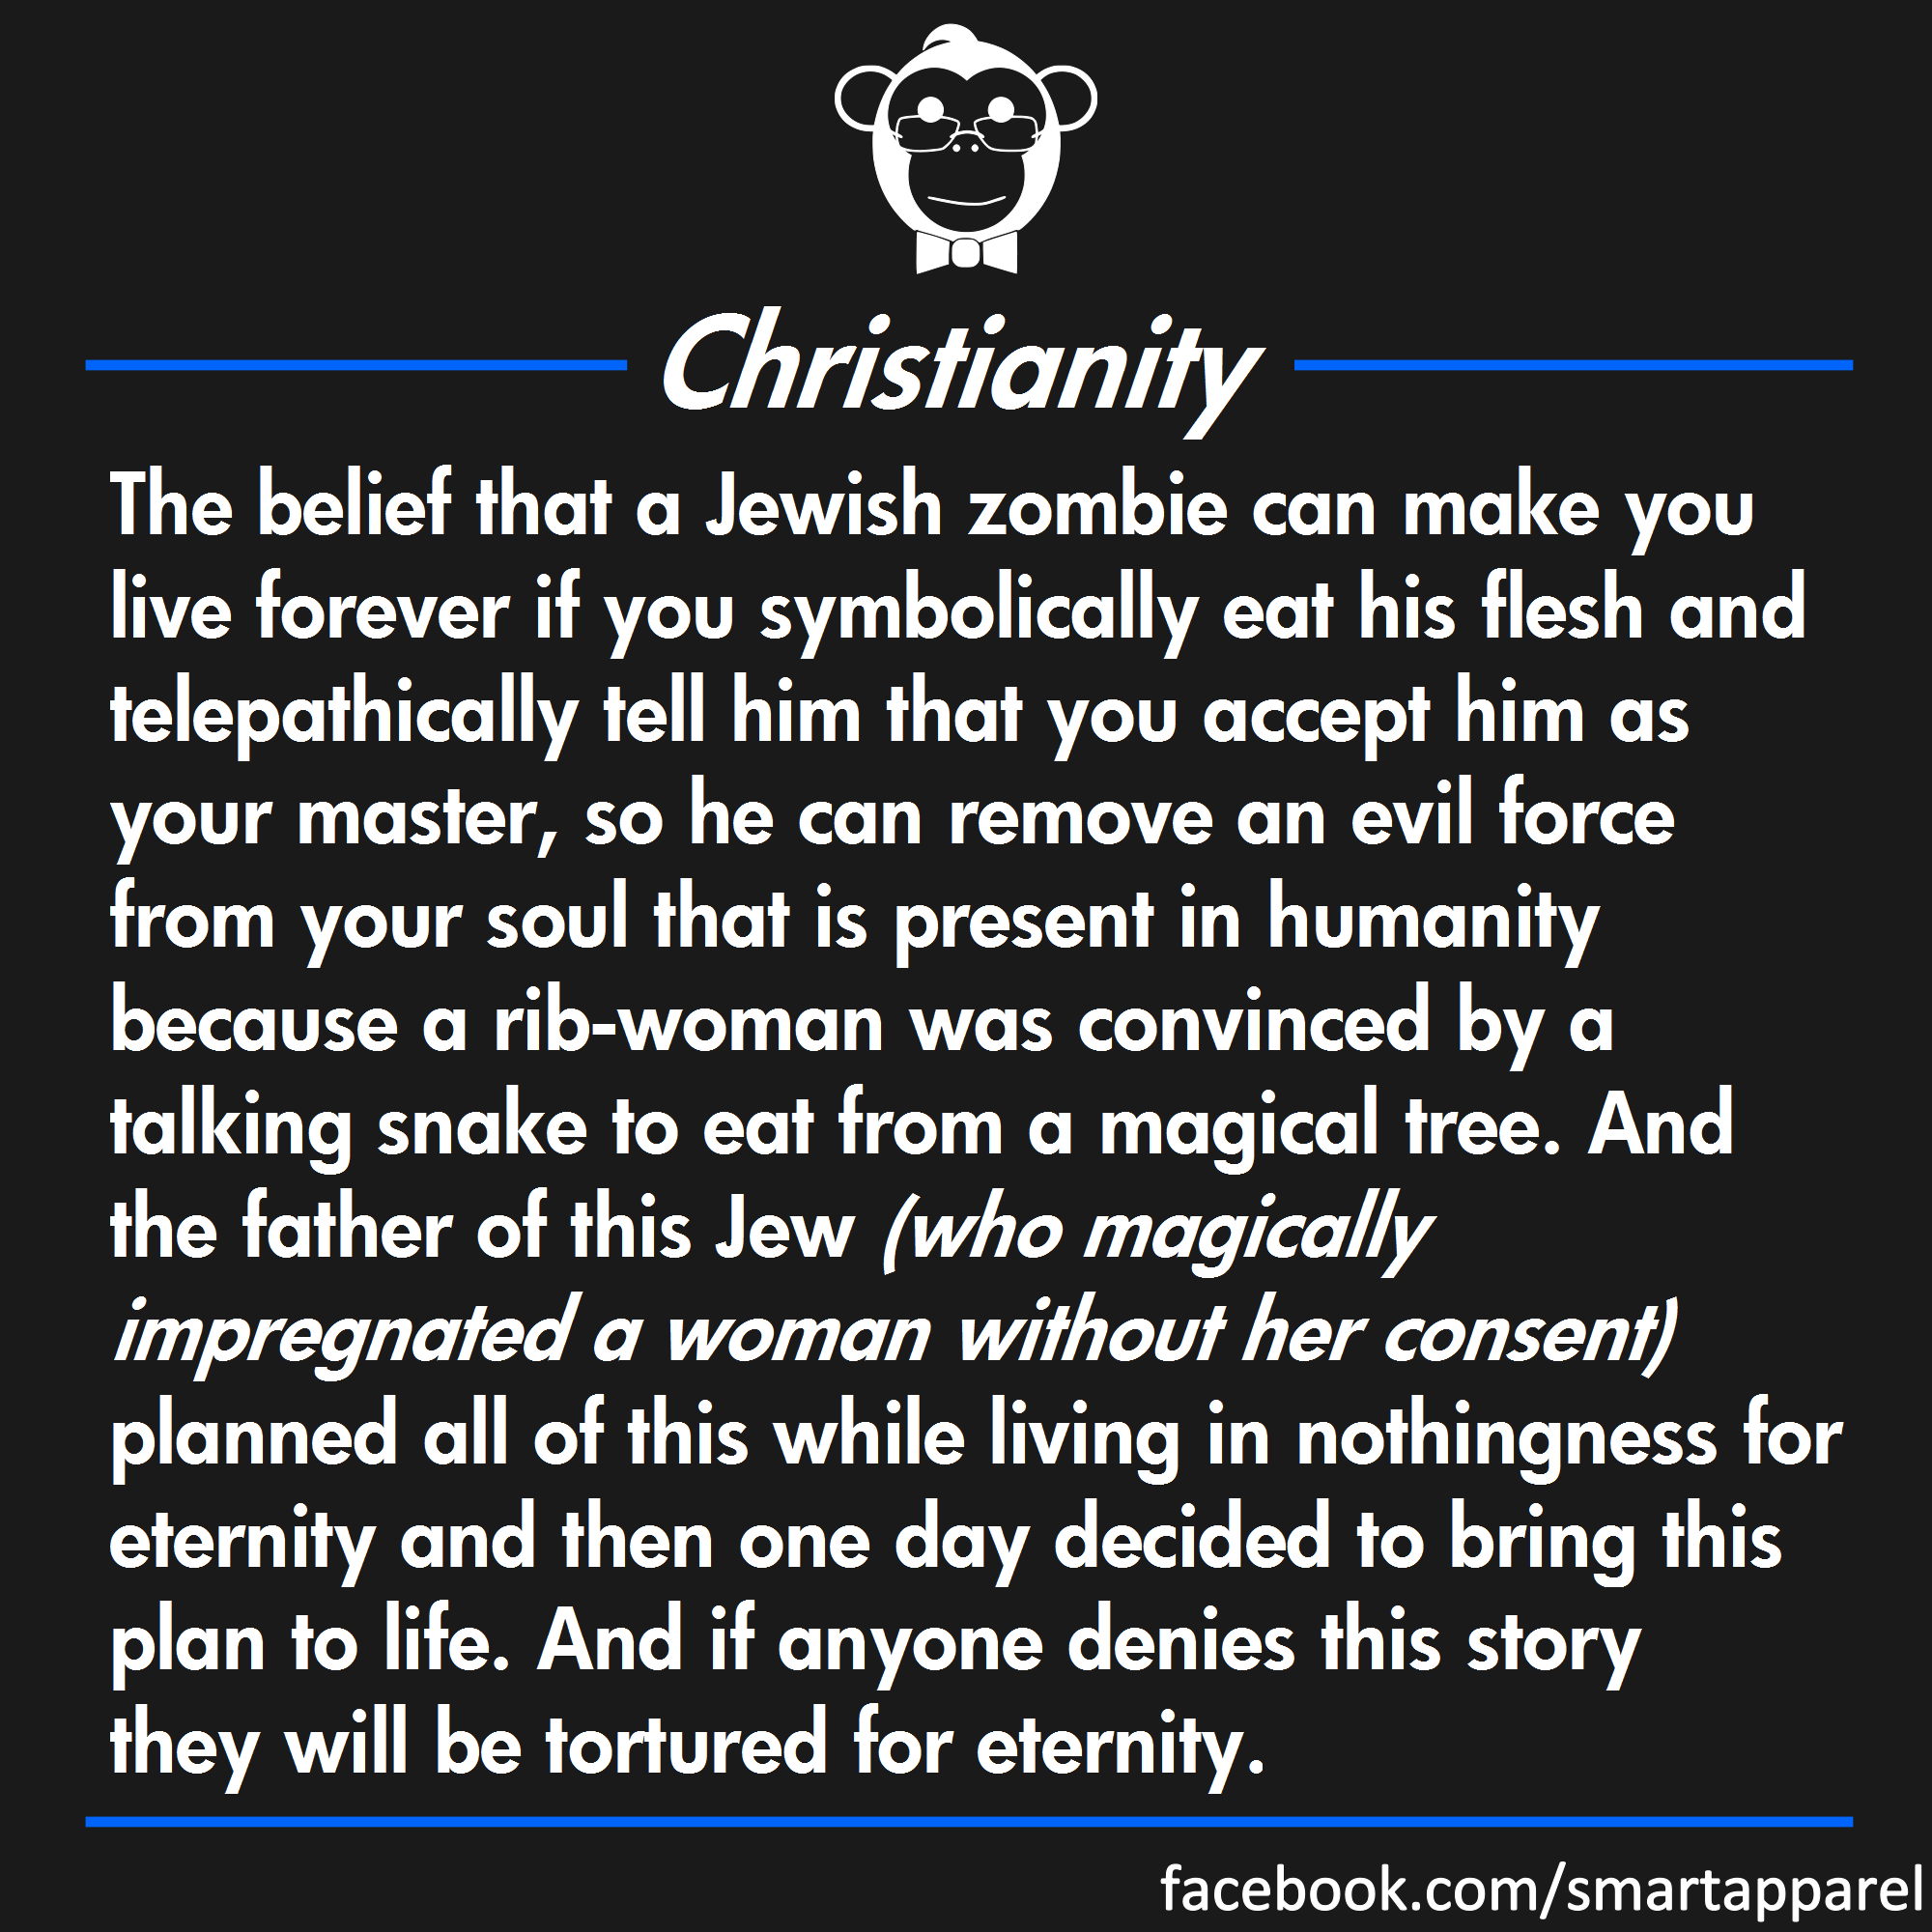 atheism meme the christian religion science atheism christian religions